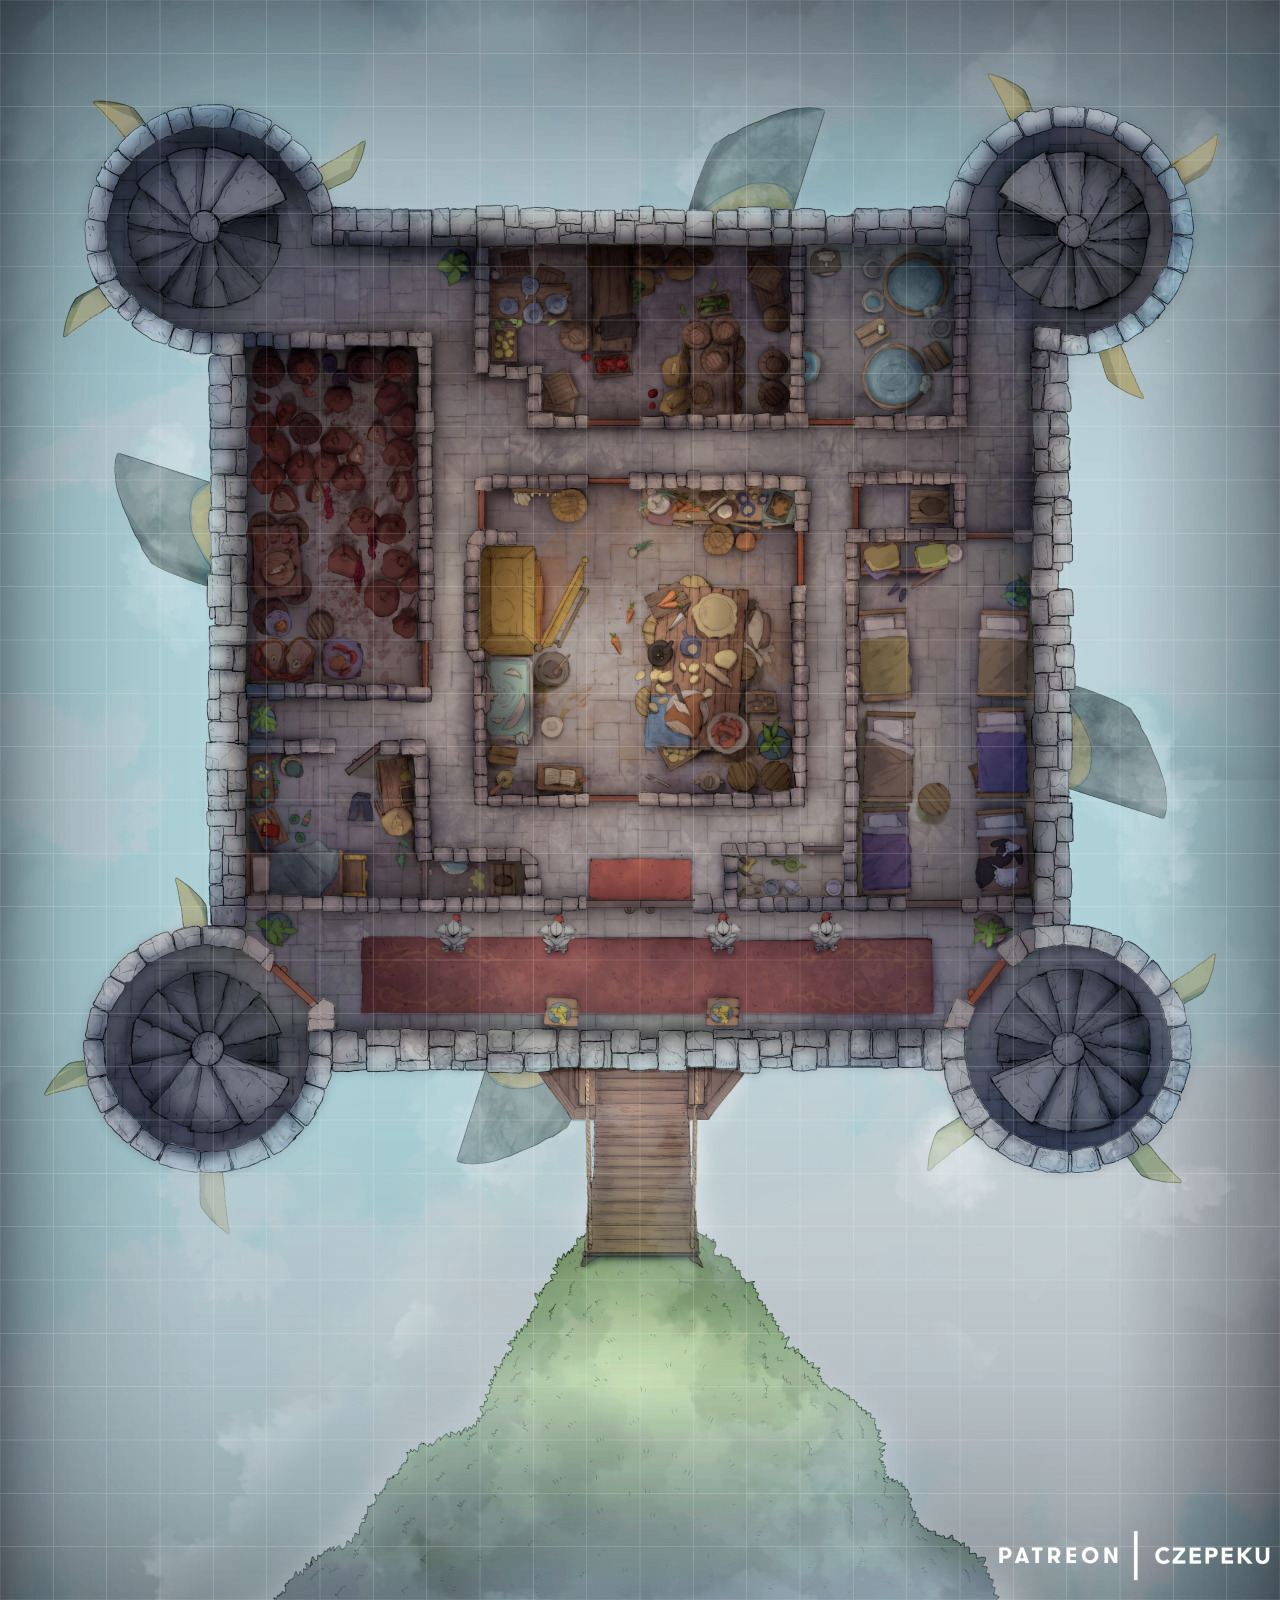 Dnd Fort Map : Czepeku's, Flying, Fortress, Battlemap, [24x30], This...